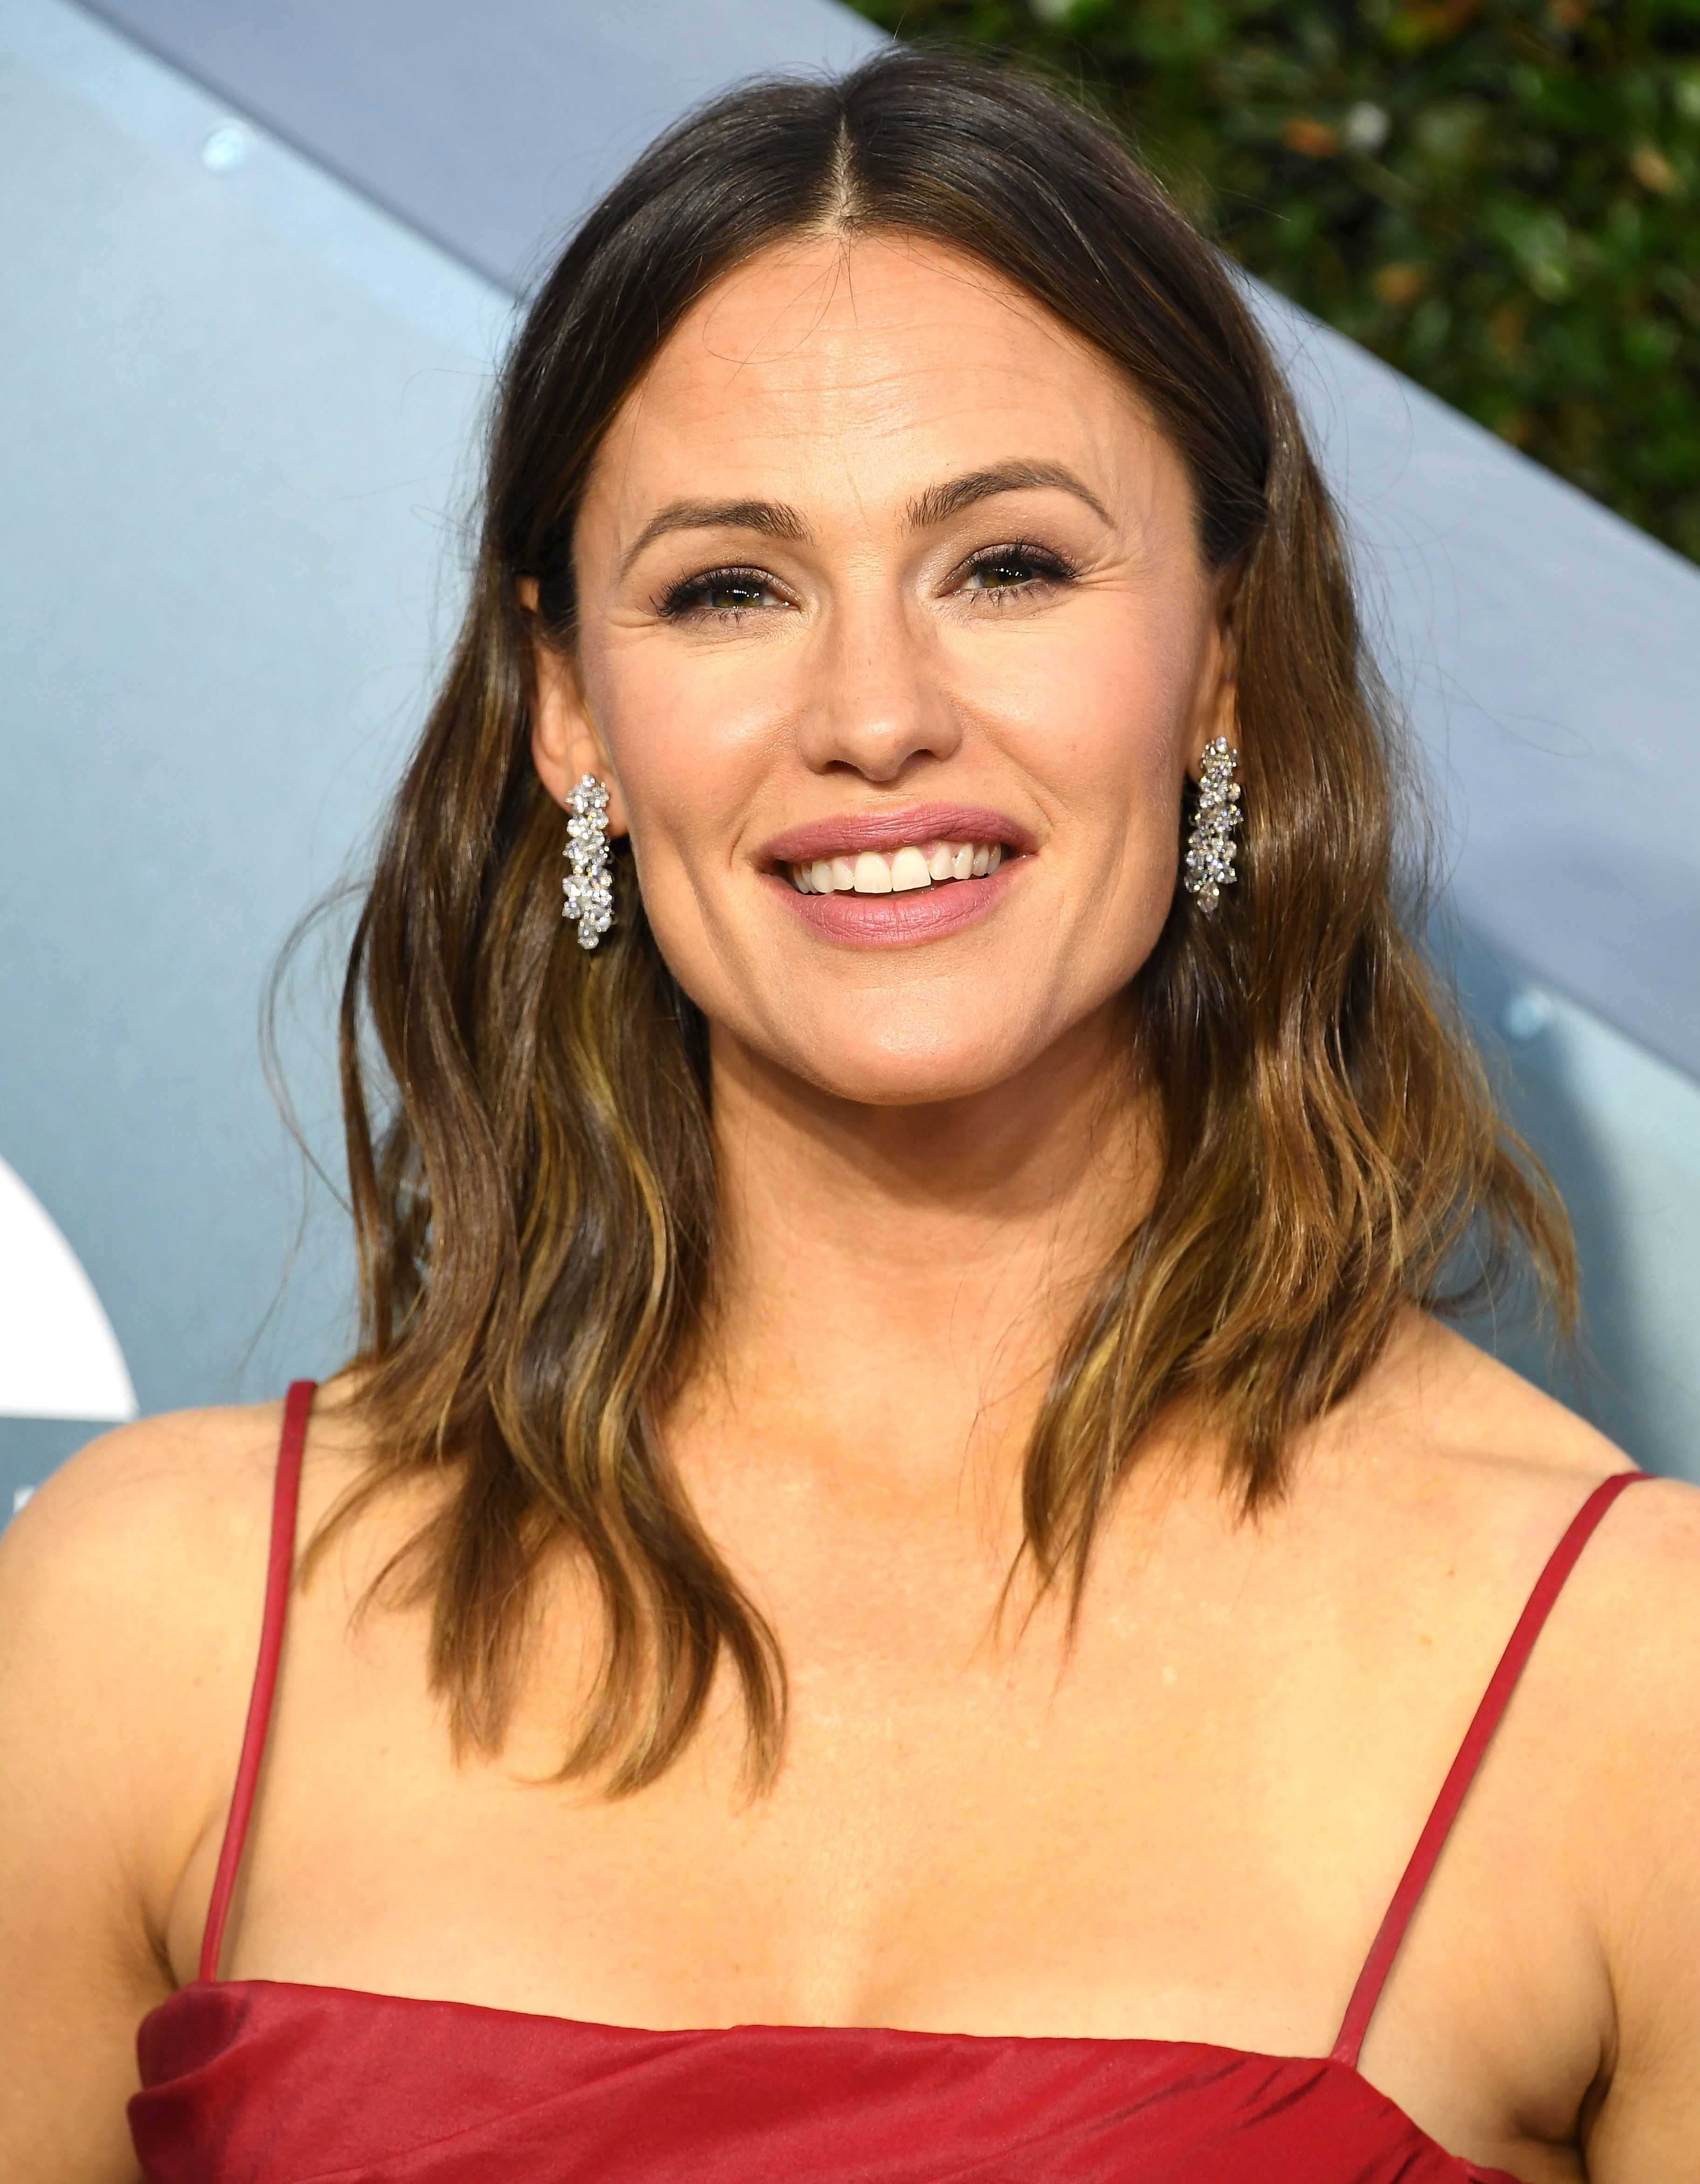 Watch Jennifer Garner Show Off Her Ballet Moves—On A Moving Airport Walkway